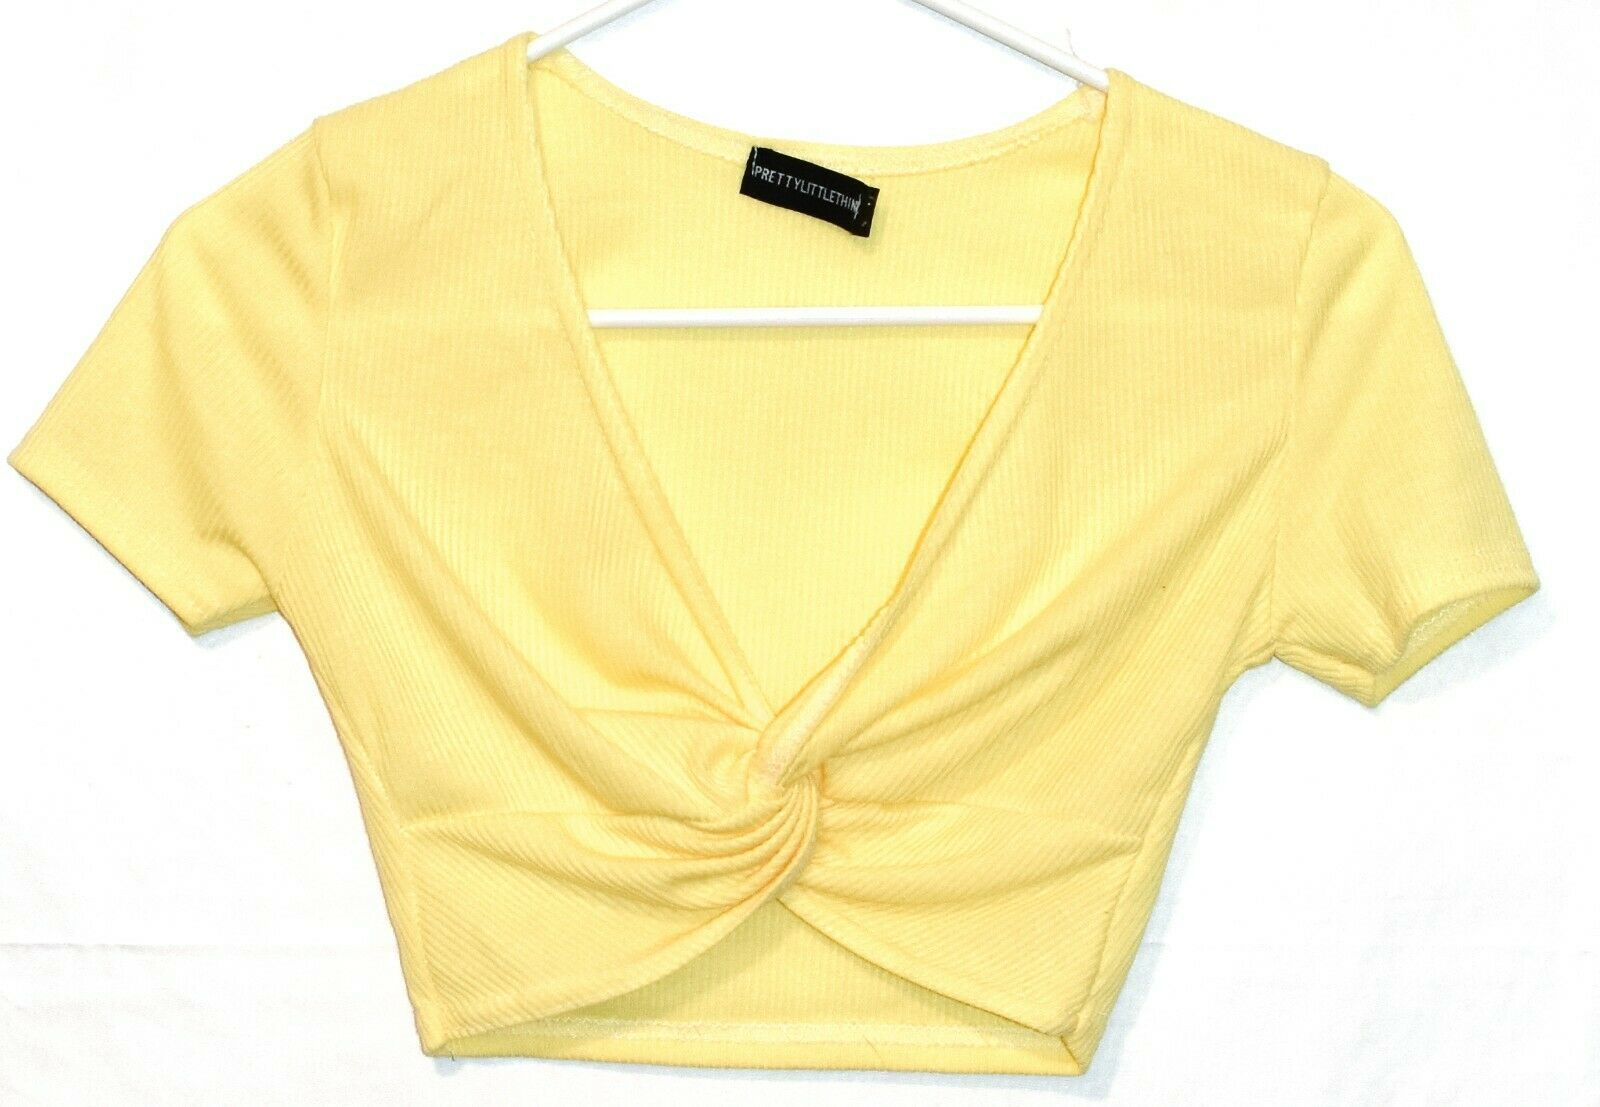 Pretty Little Thing Women's Tie Knot Front Ribbed Knit V-Neck Crop Top Size 2